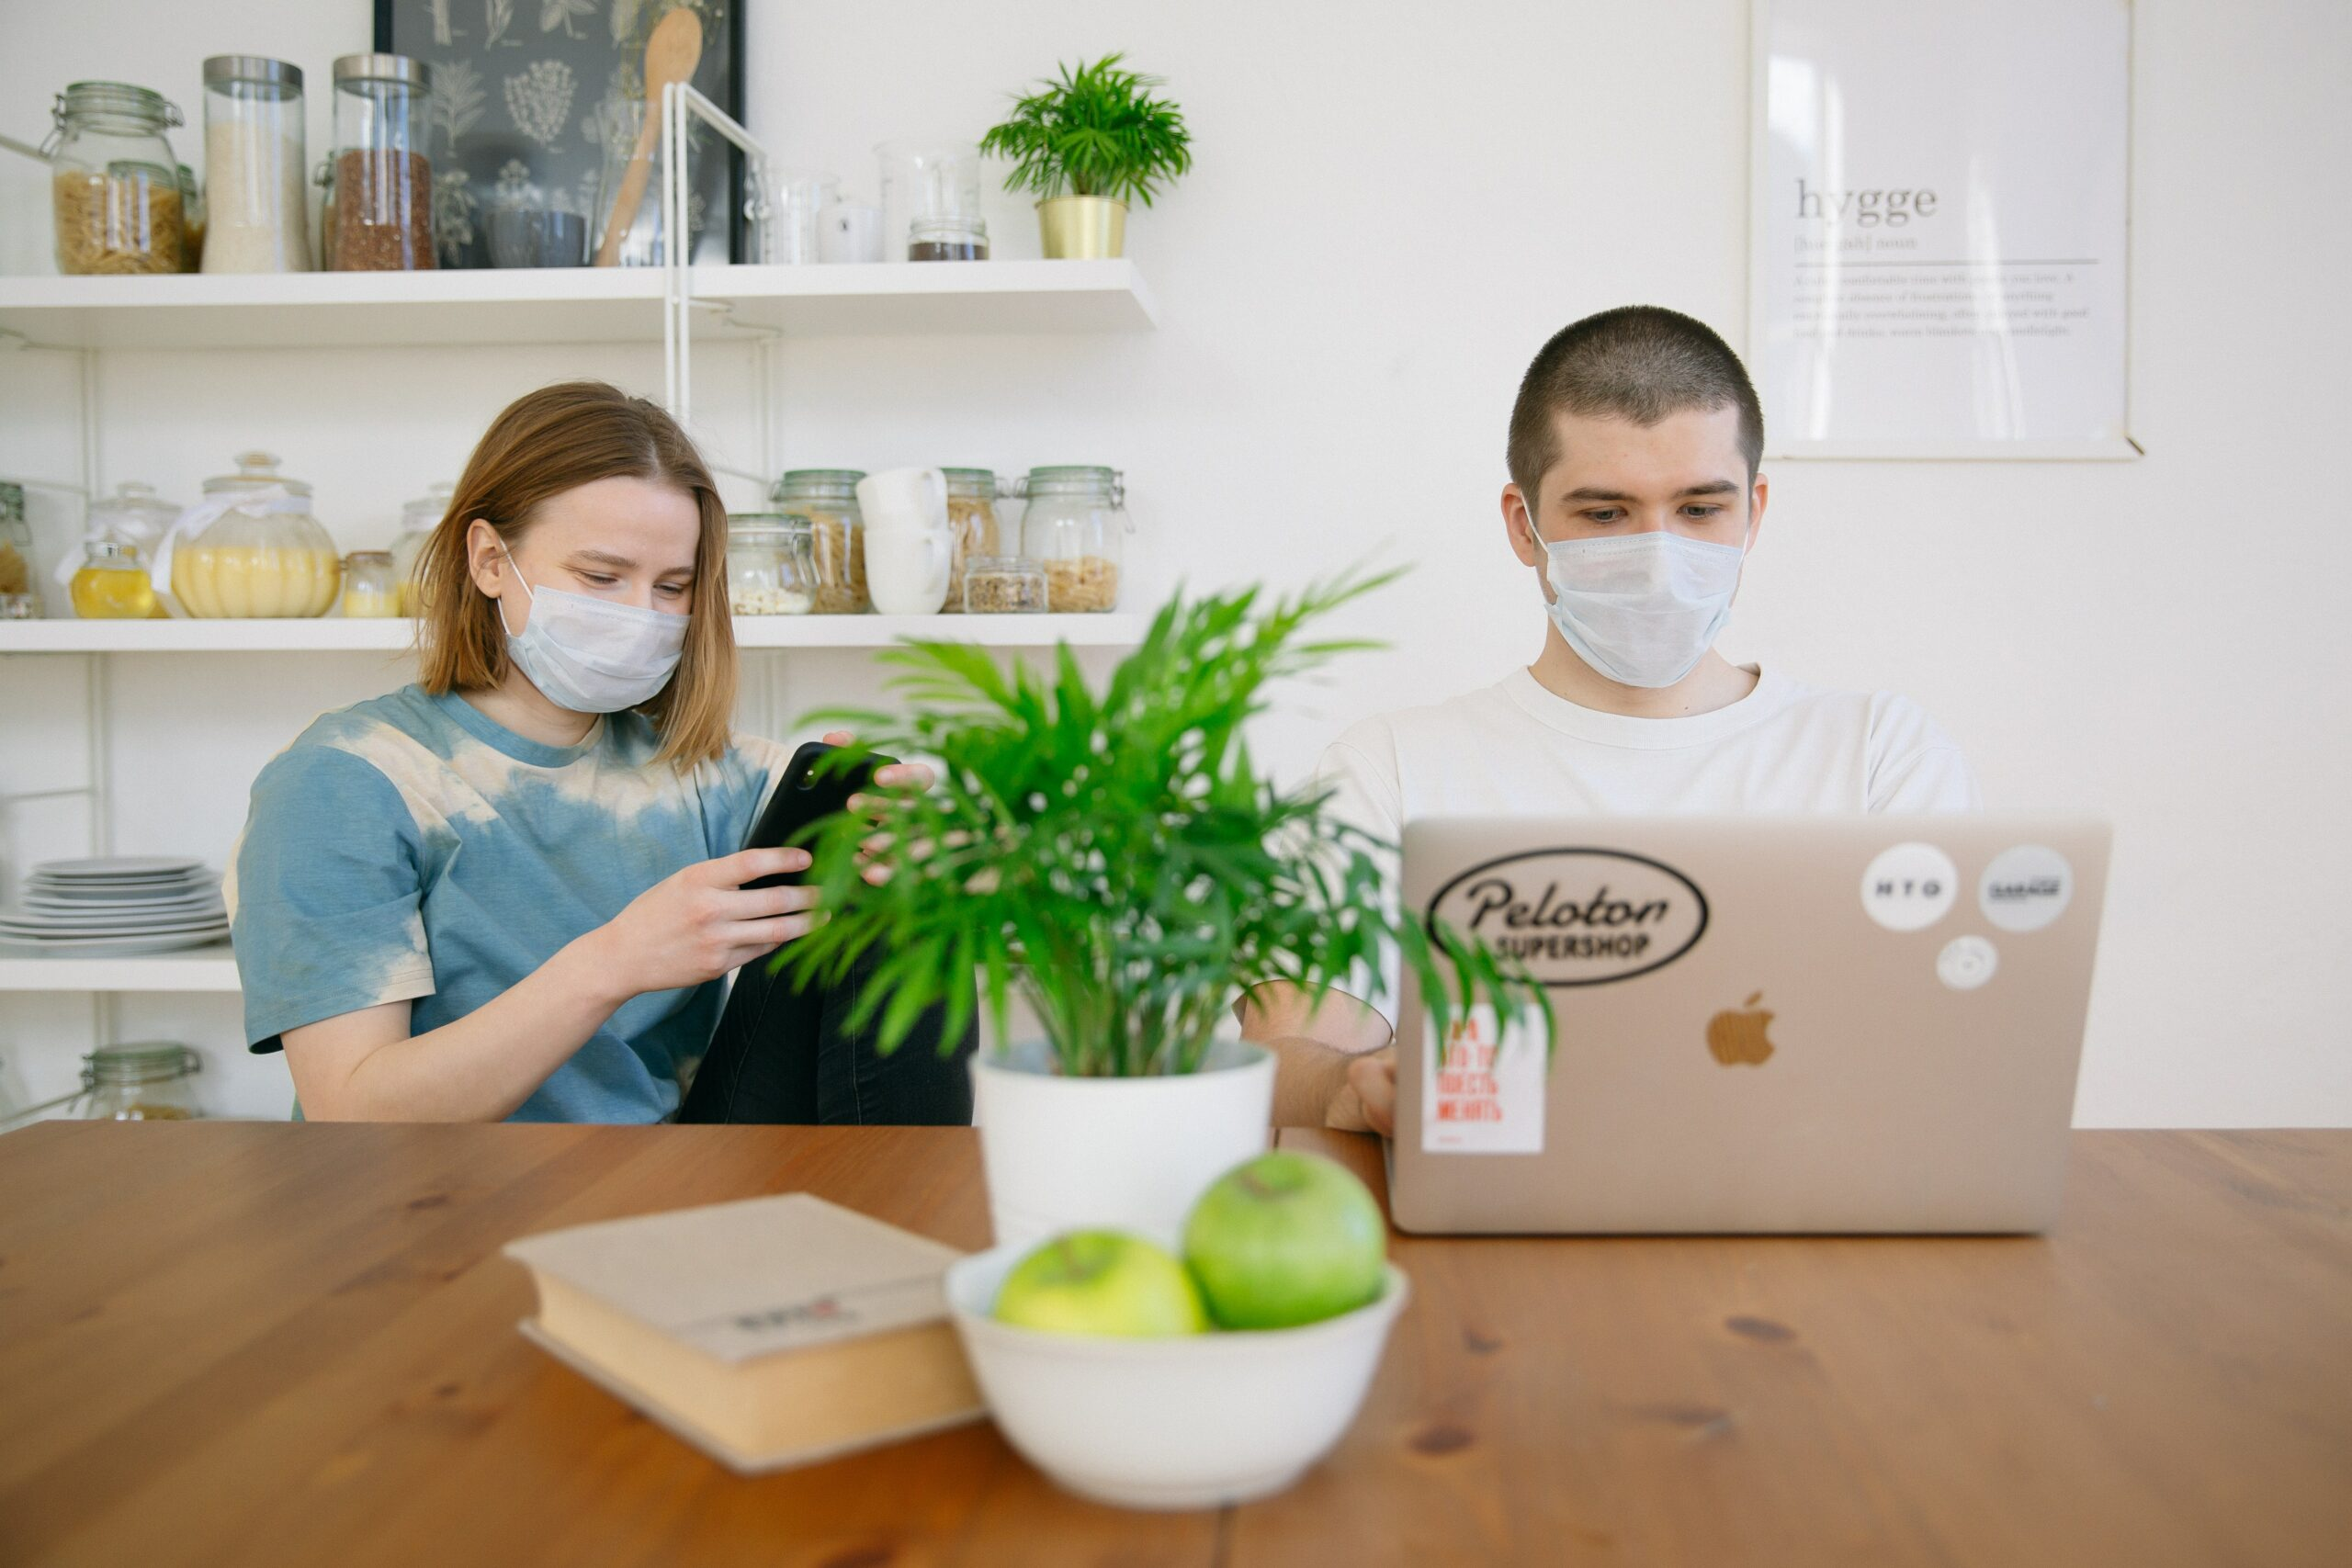 Two people in face masks sit at a kitchen table looking at their phone and laptop.